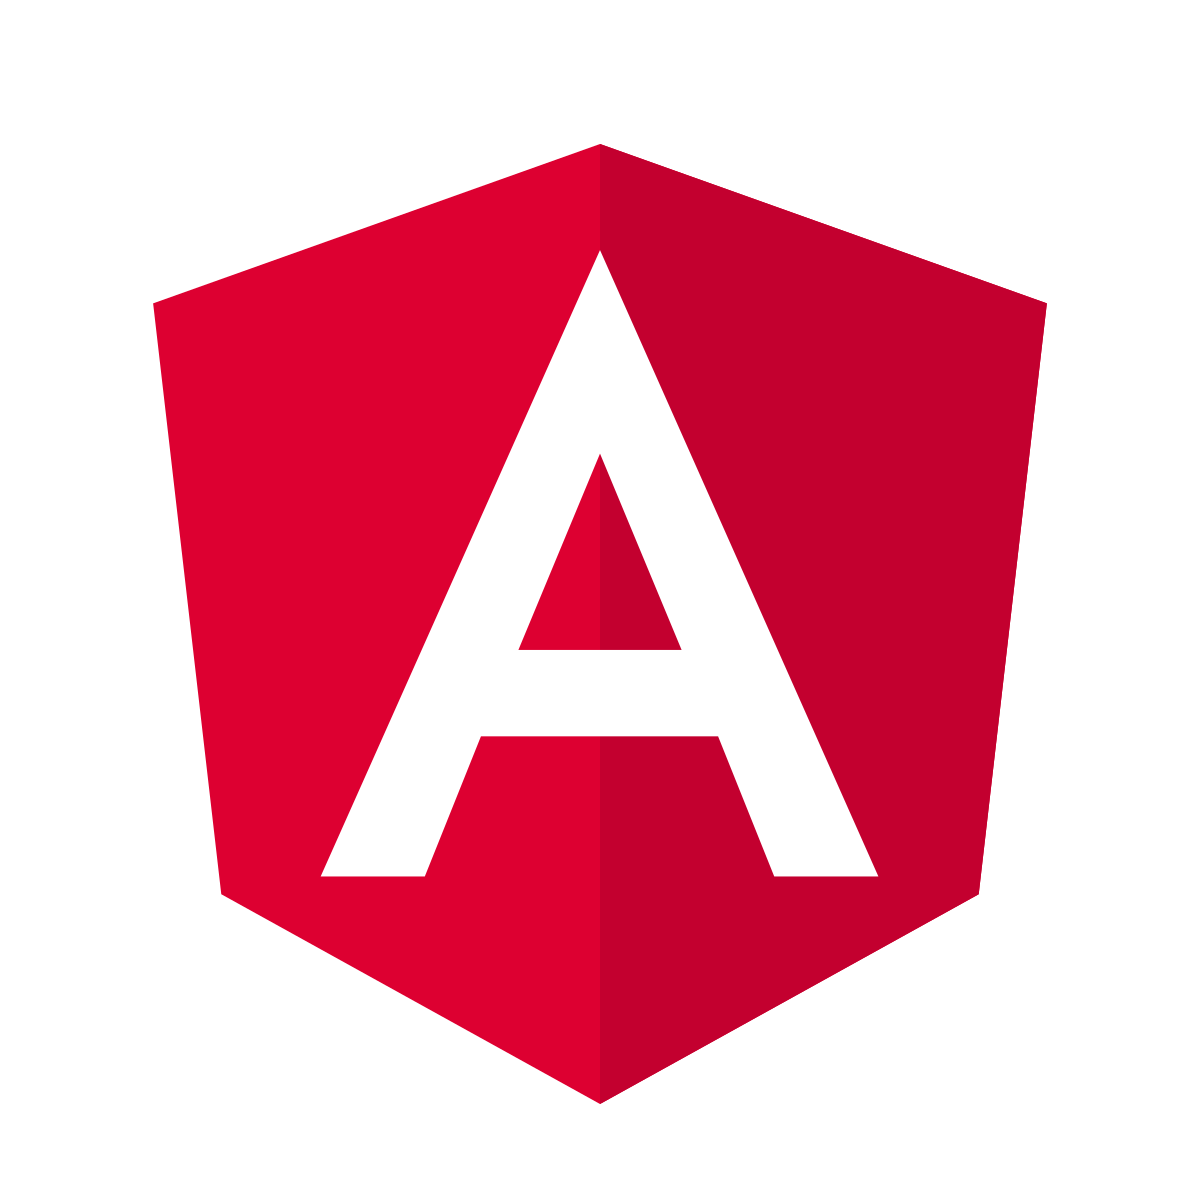 Angularjs A Detailed Guide For Beginners: A Quick Guide To AngularJS Scopes